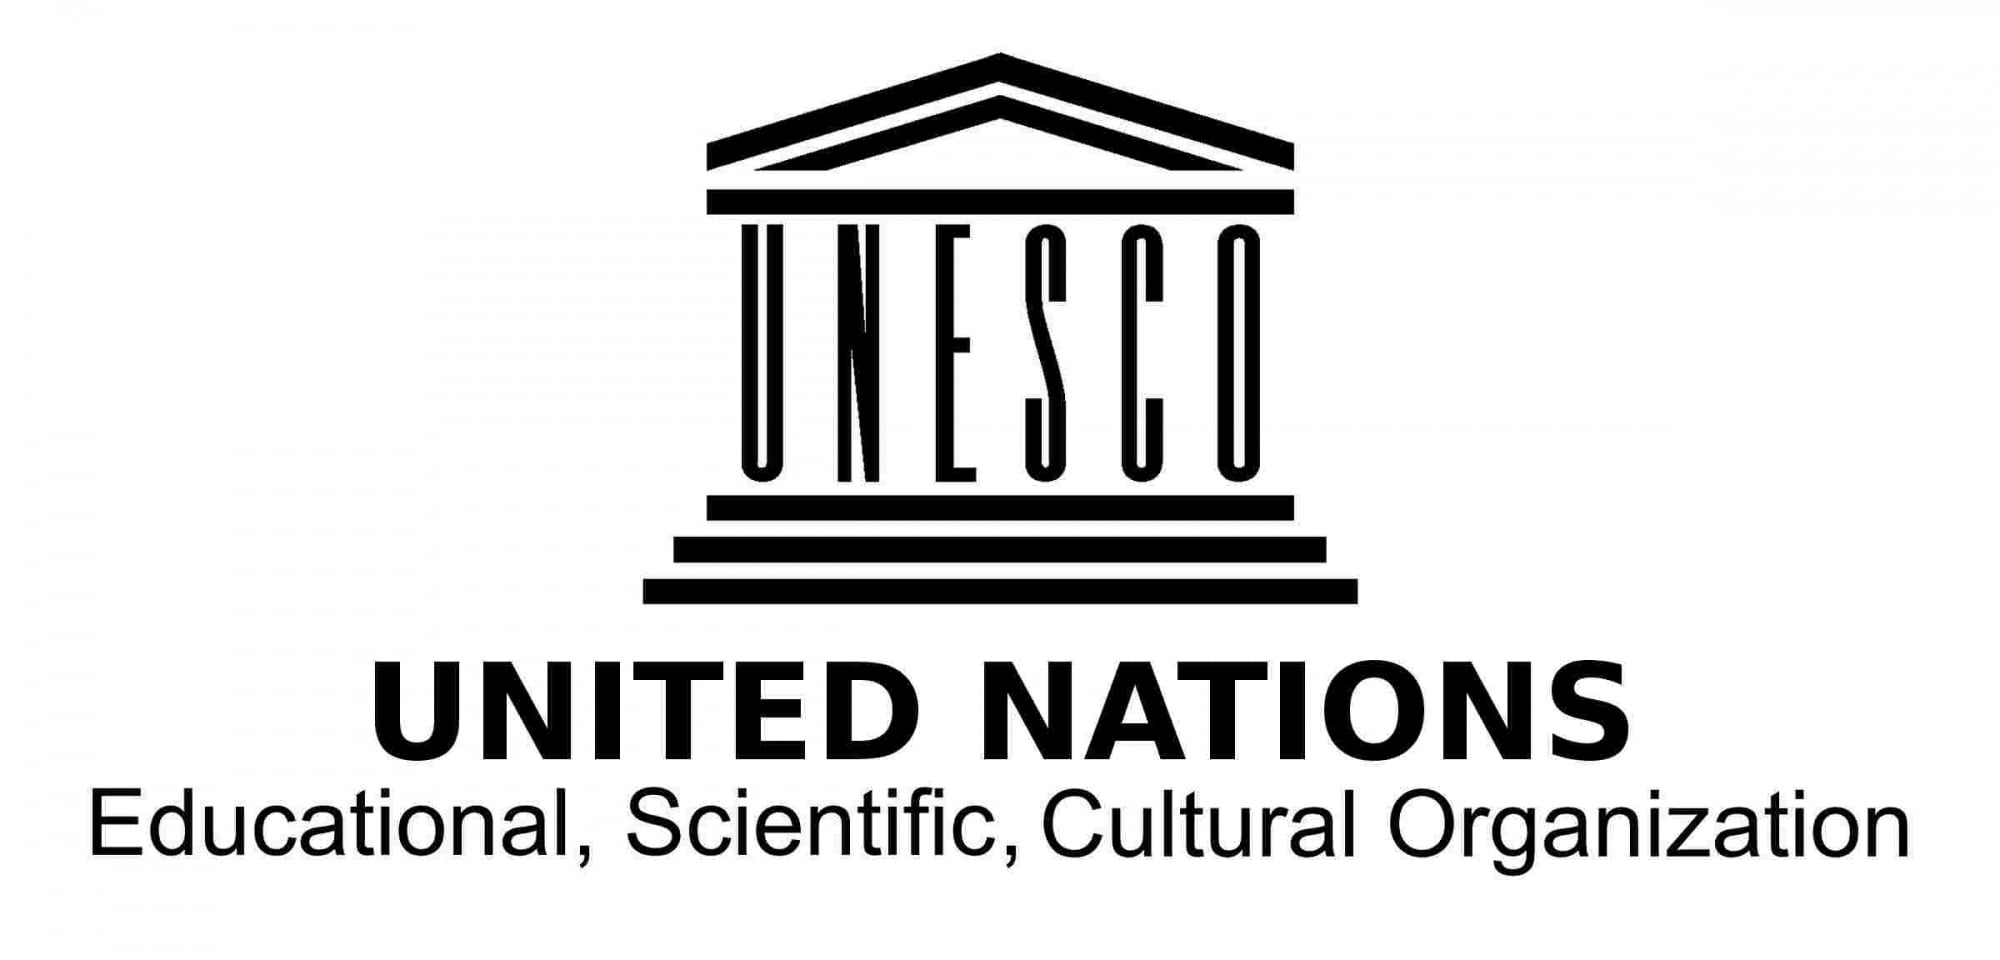 unesco logo 10 - Take messages on sexual violence against girl-child, women to schools, UNESCO tells principals